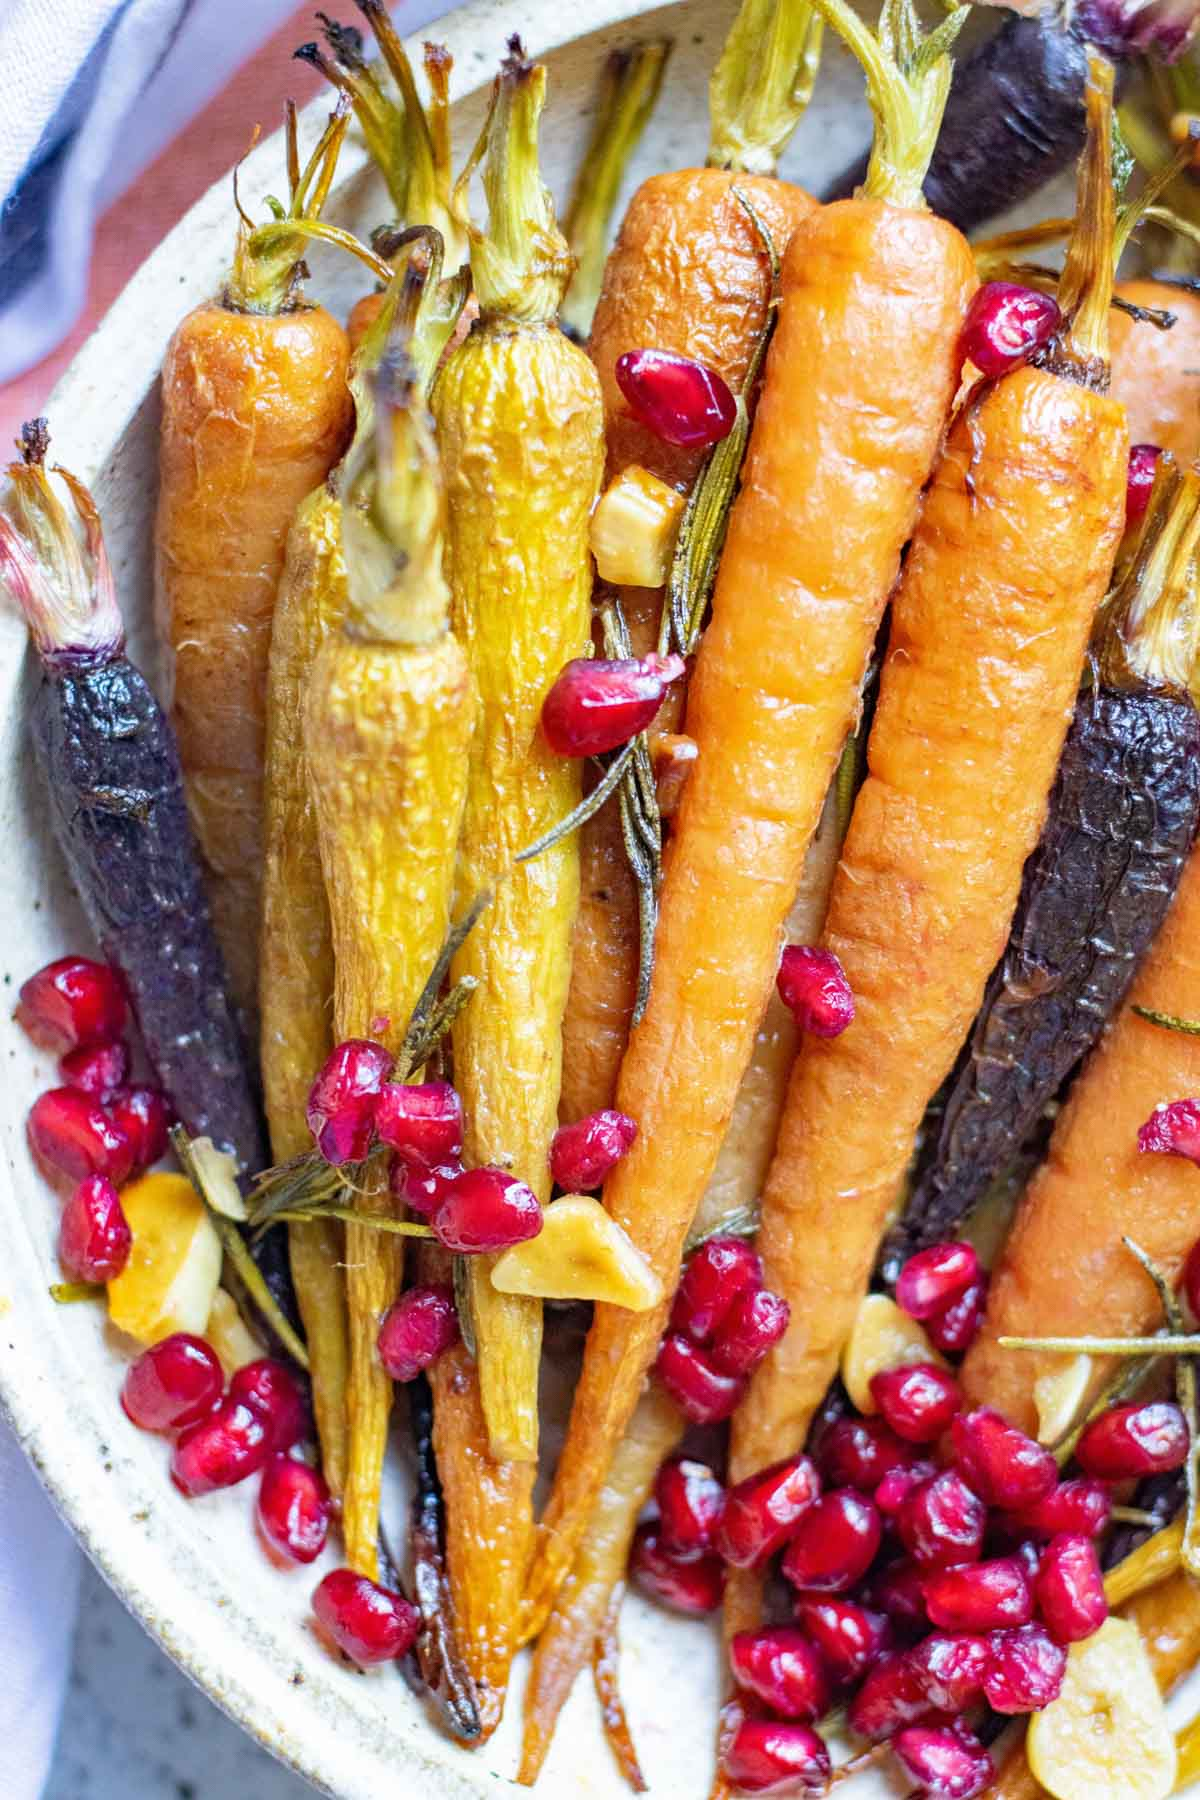 A plate of honey roasted carrots topped with pomegranate seeds